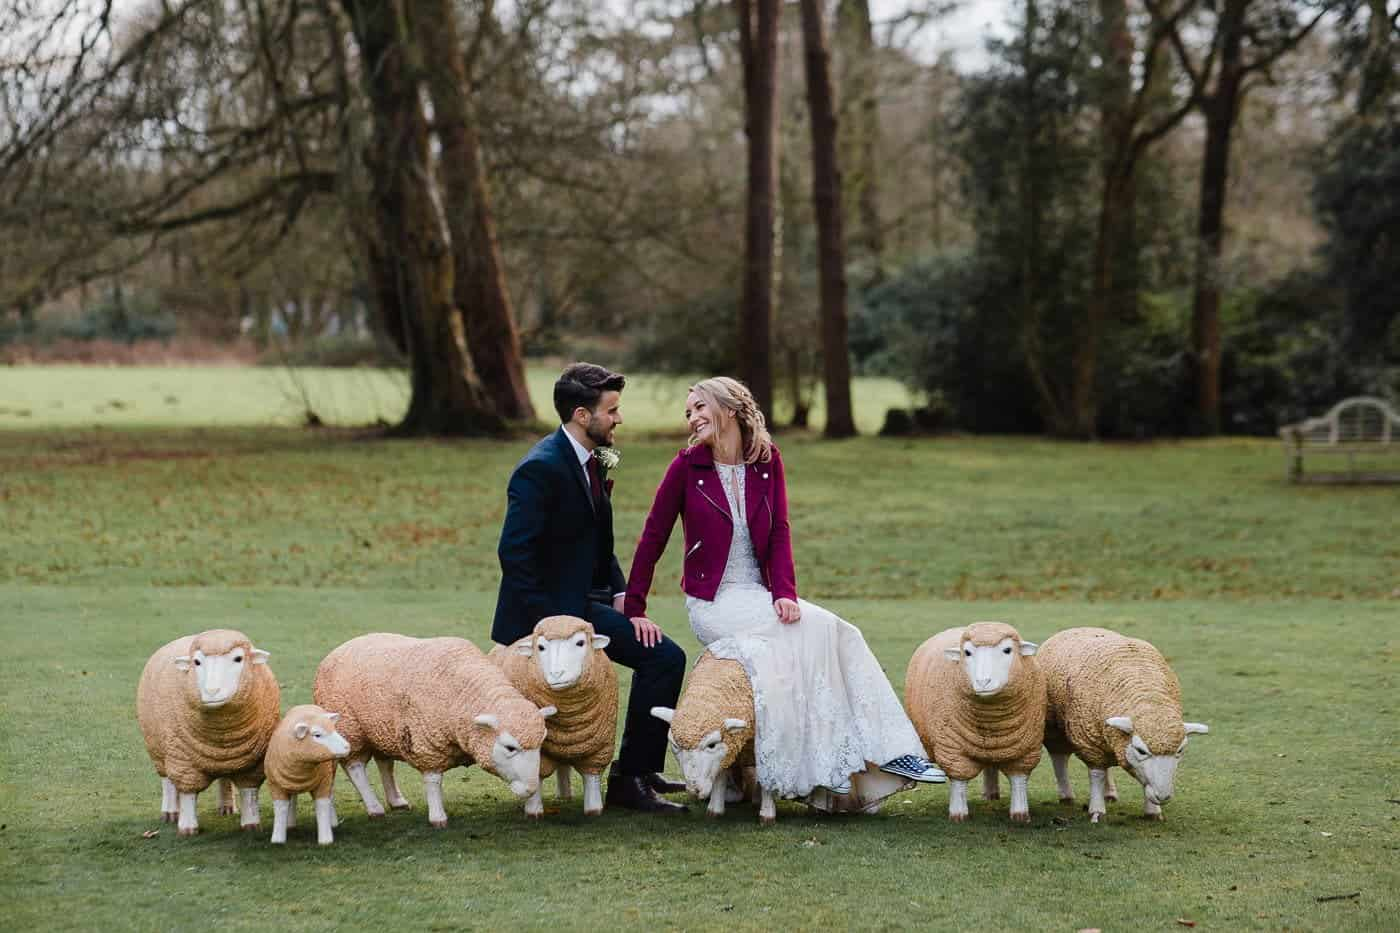 bride and groom sitting on sheep